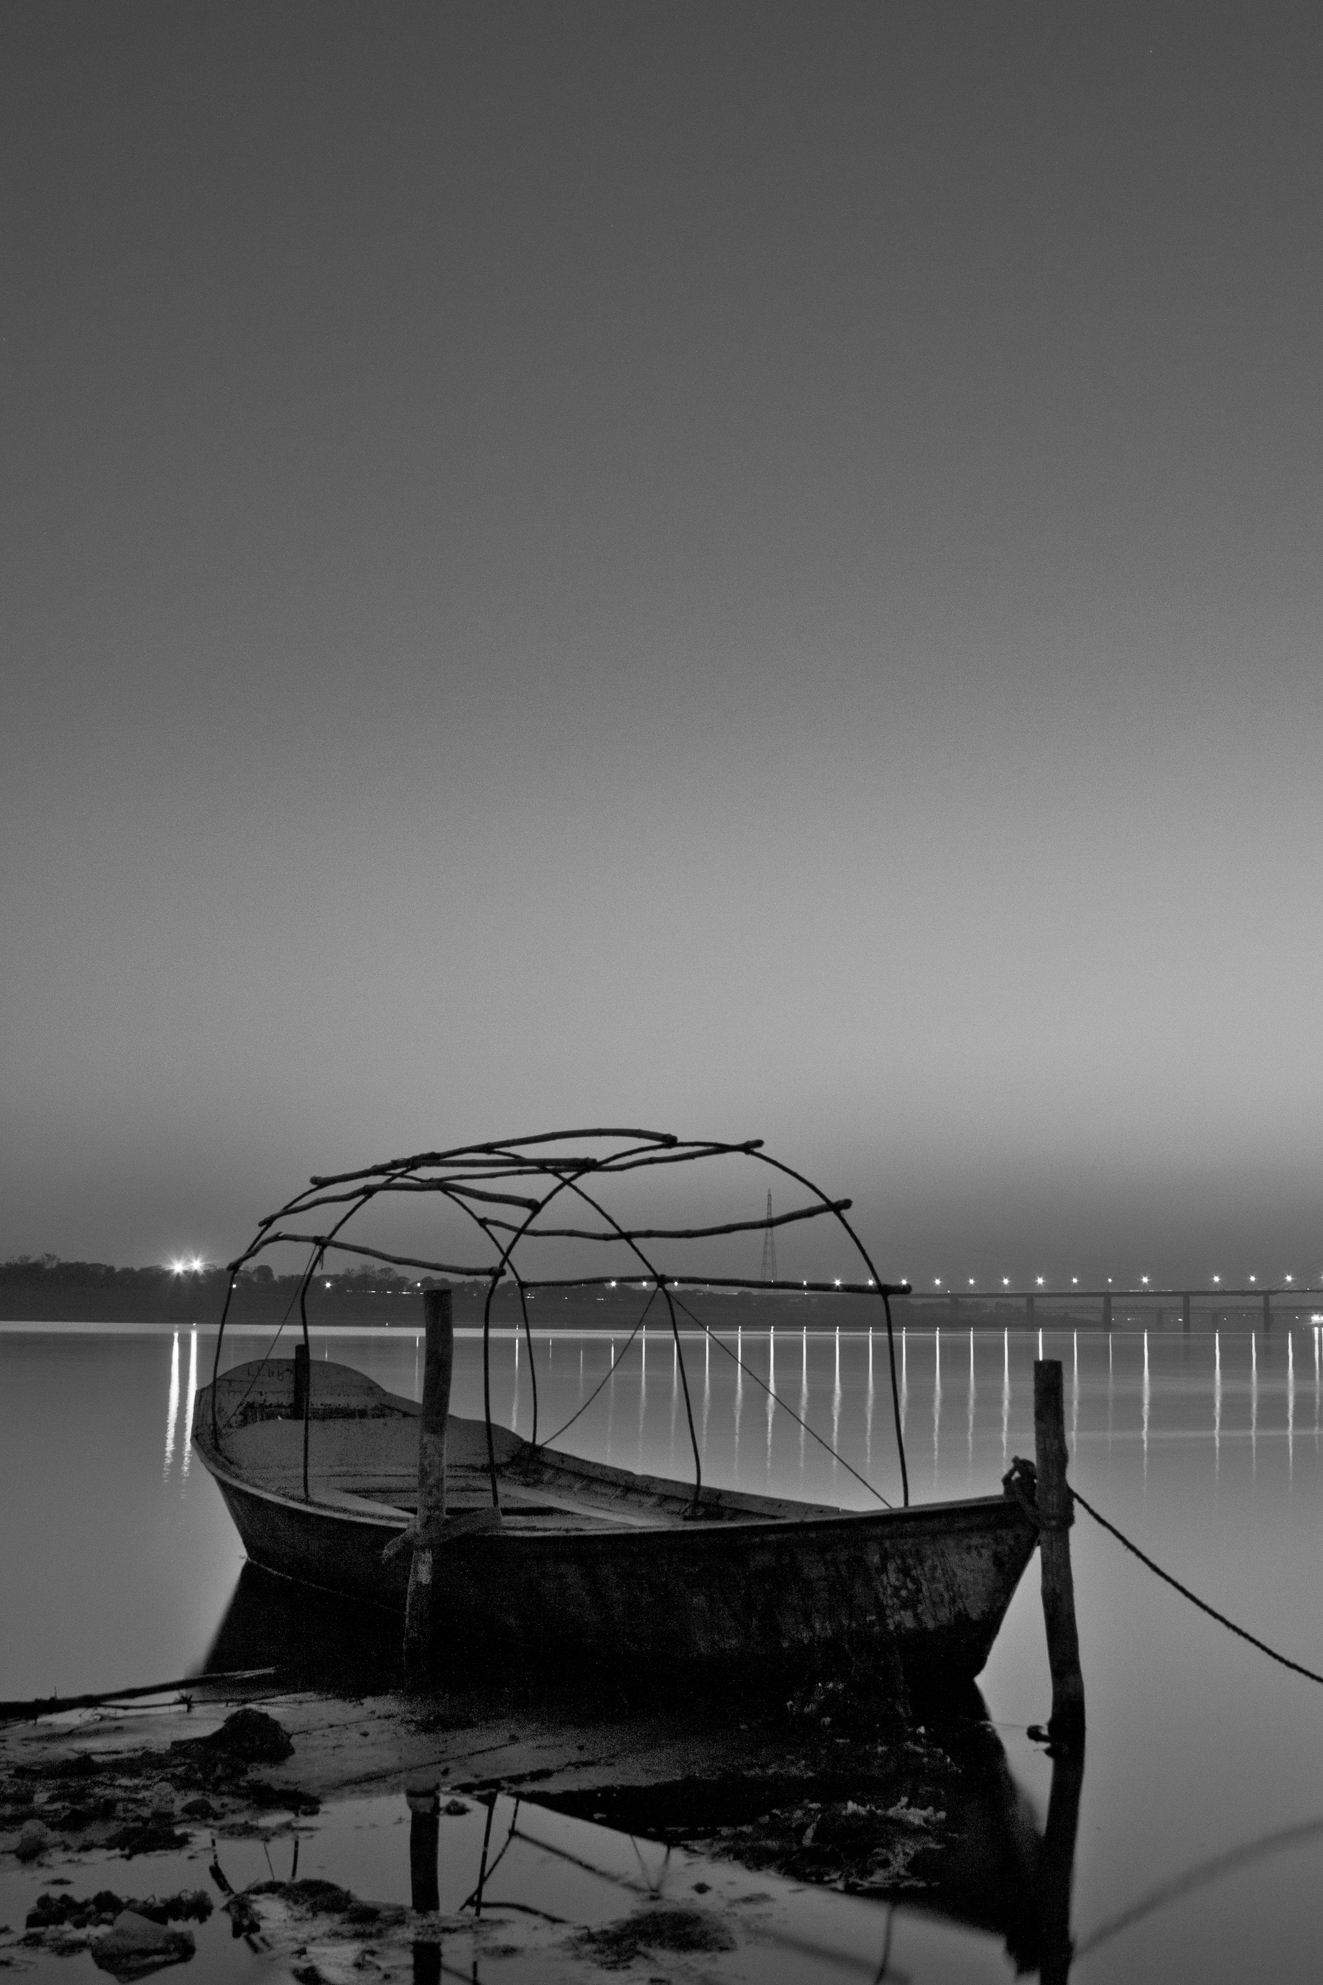 a boat float in wait for a better tomorrow